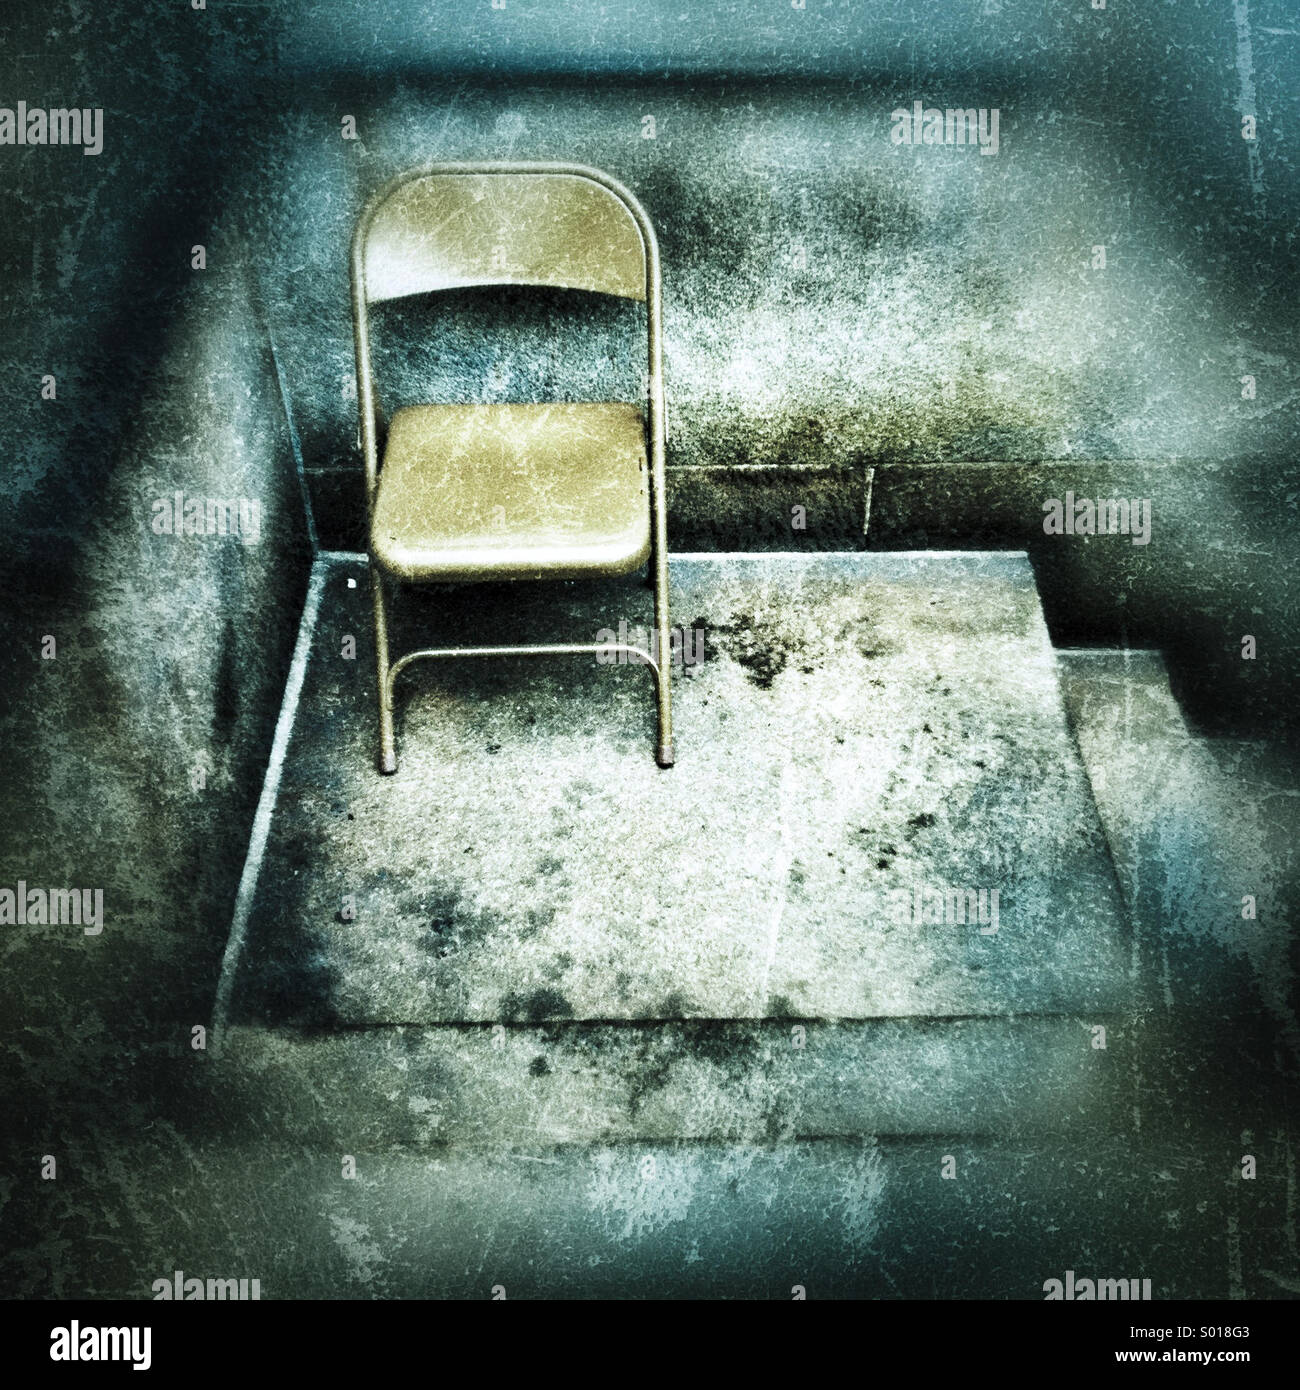 A metal folding chair sitting on a distressed looking cement stoop - Stock Image